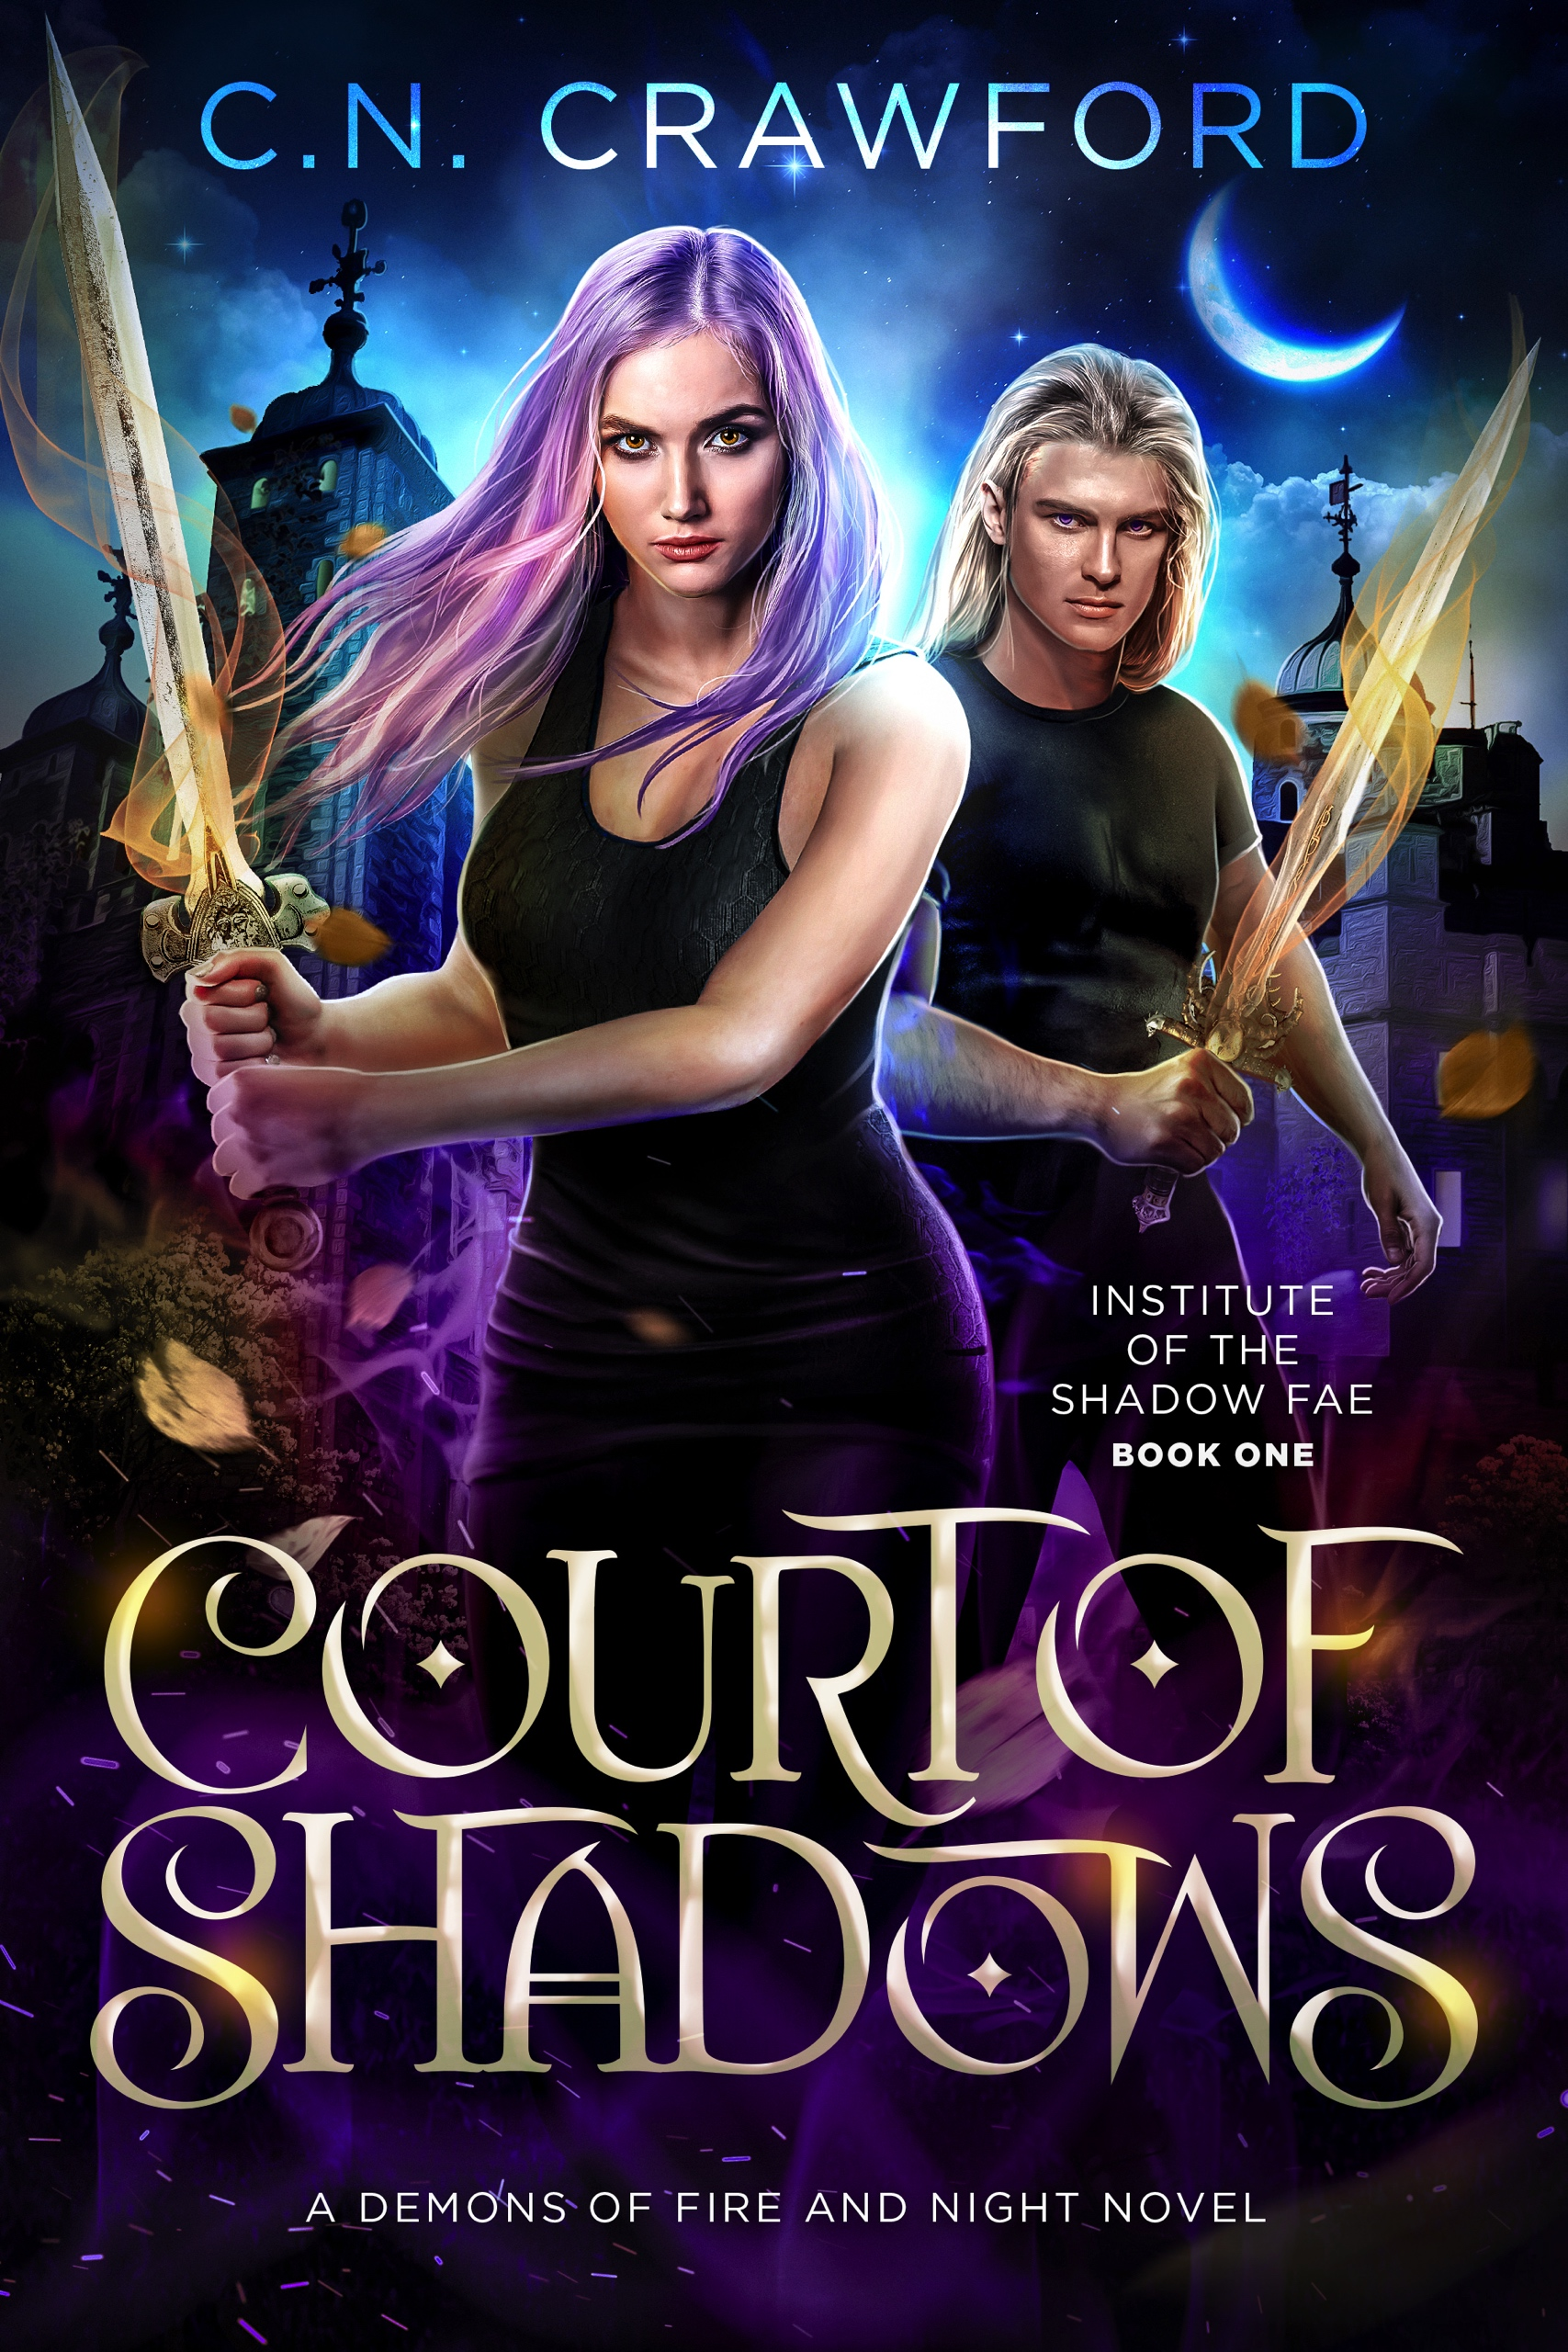 Court-of-Shadows-Kindle.jpg